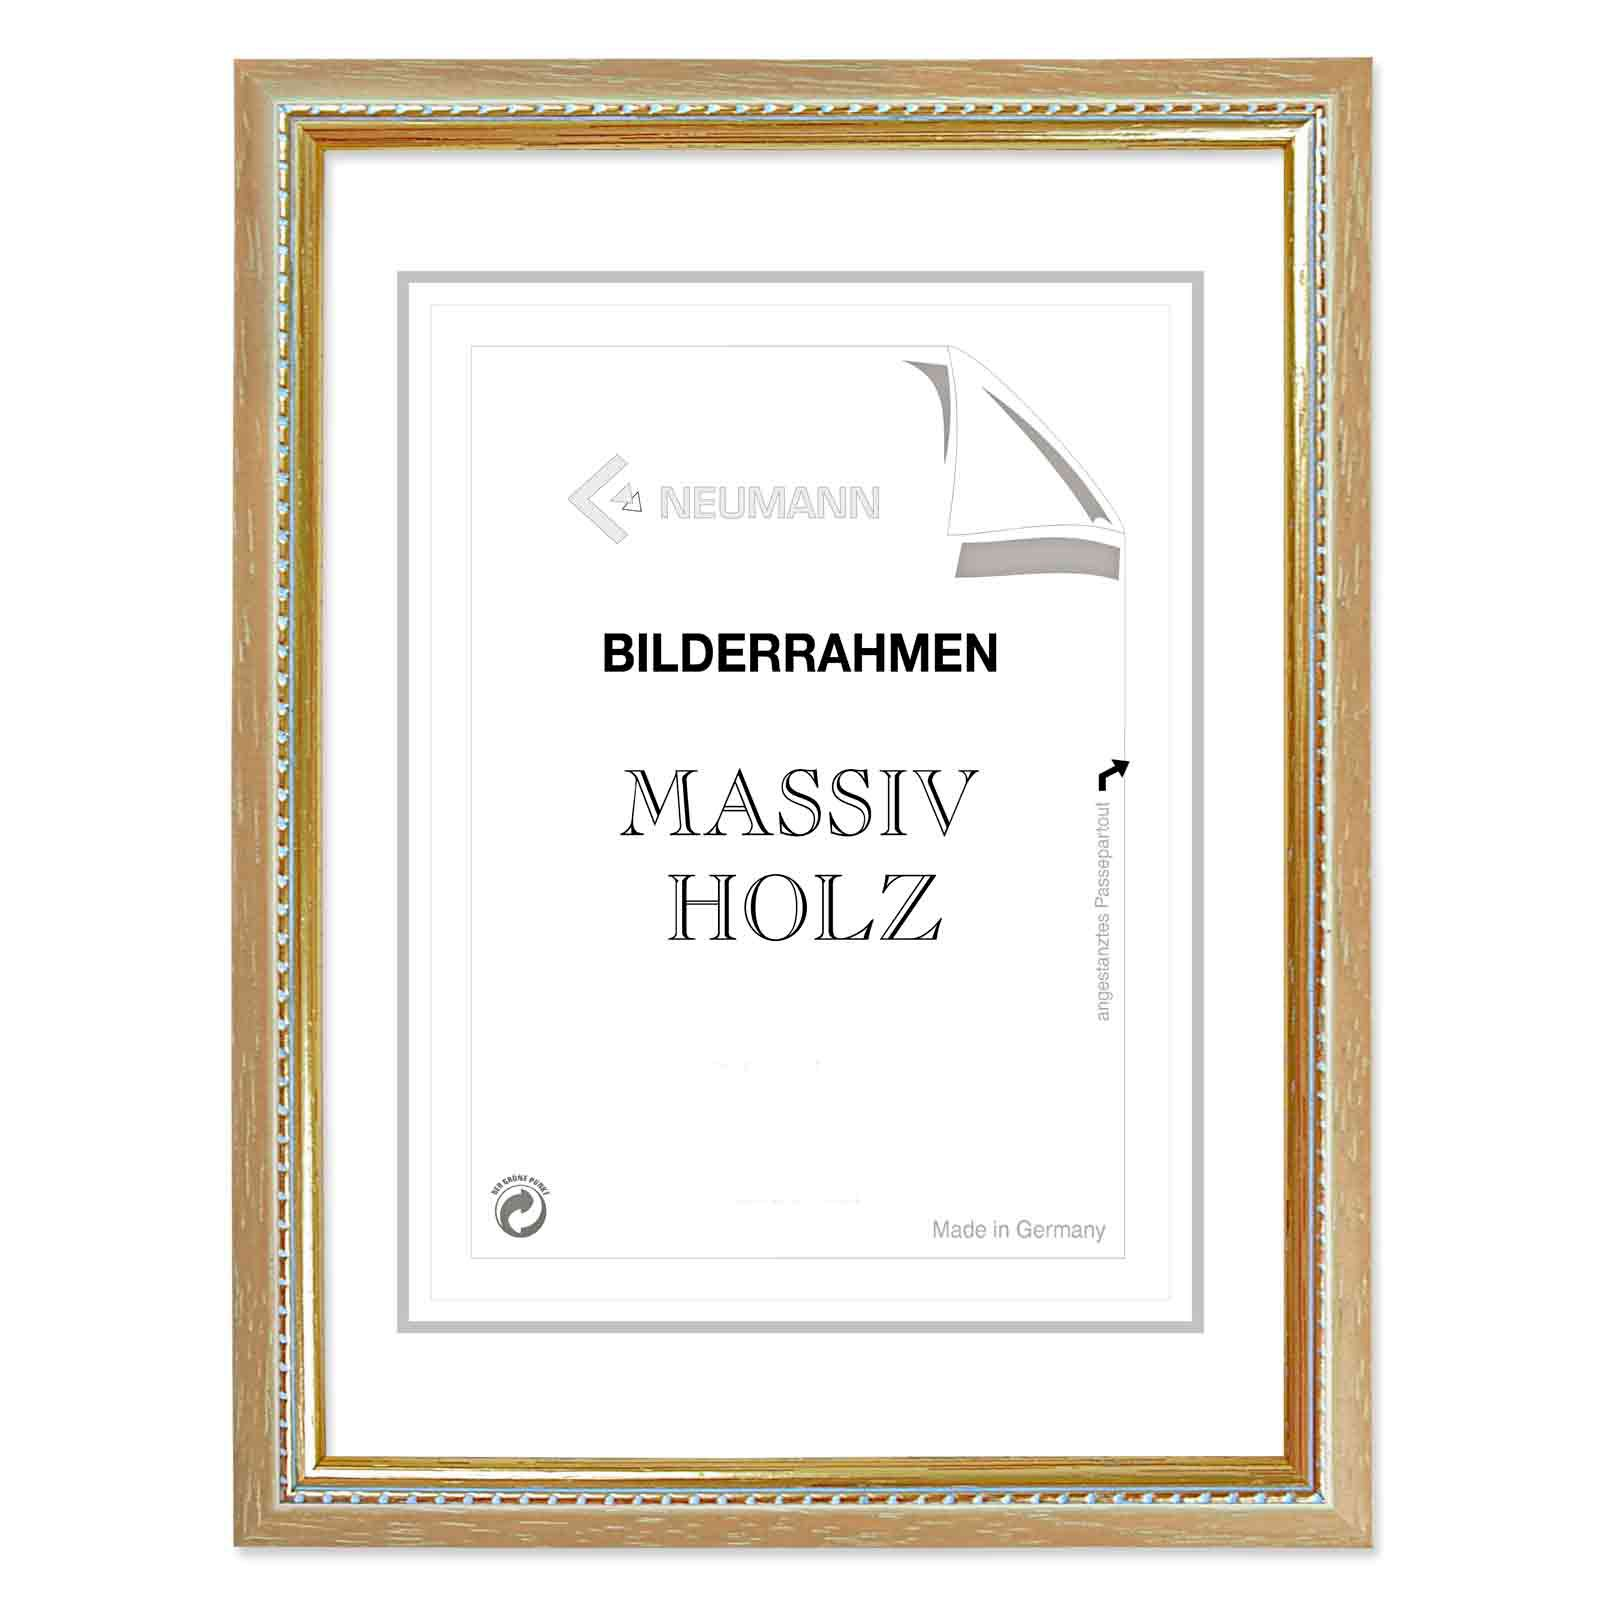 Wooden Frame Mailand Changing Frame in 5 Colors Cream 18x24 Cm | eBay